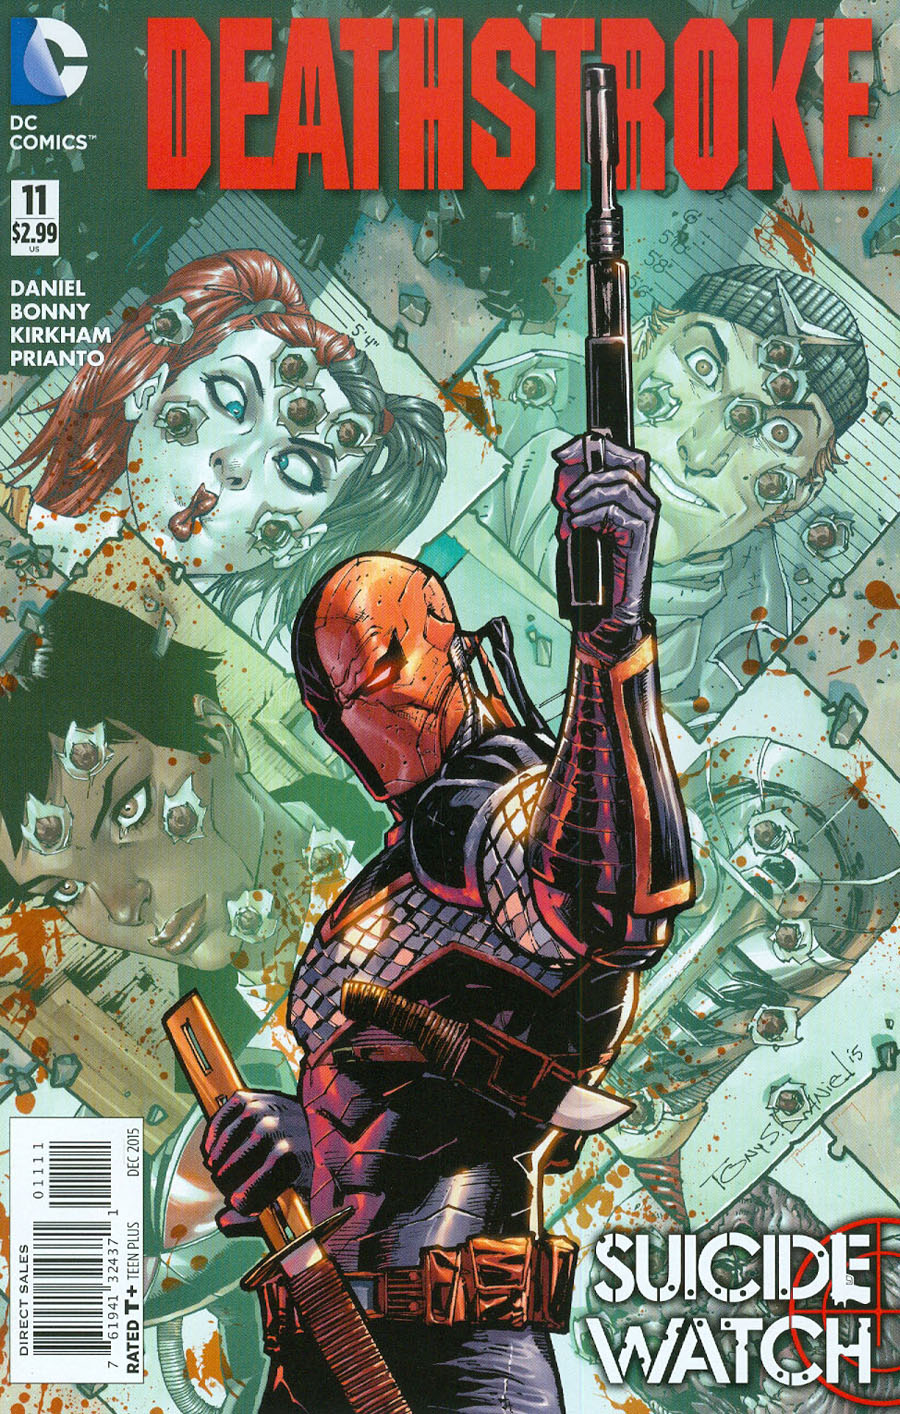 Deathstroke Vol 3 #11 Cover A Regular Tony S Daniel Cover